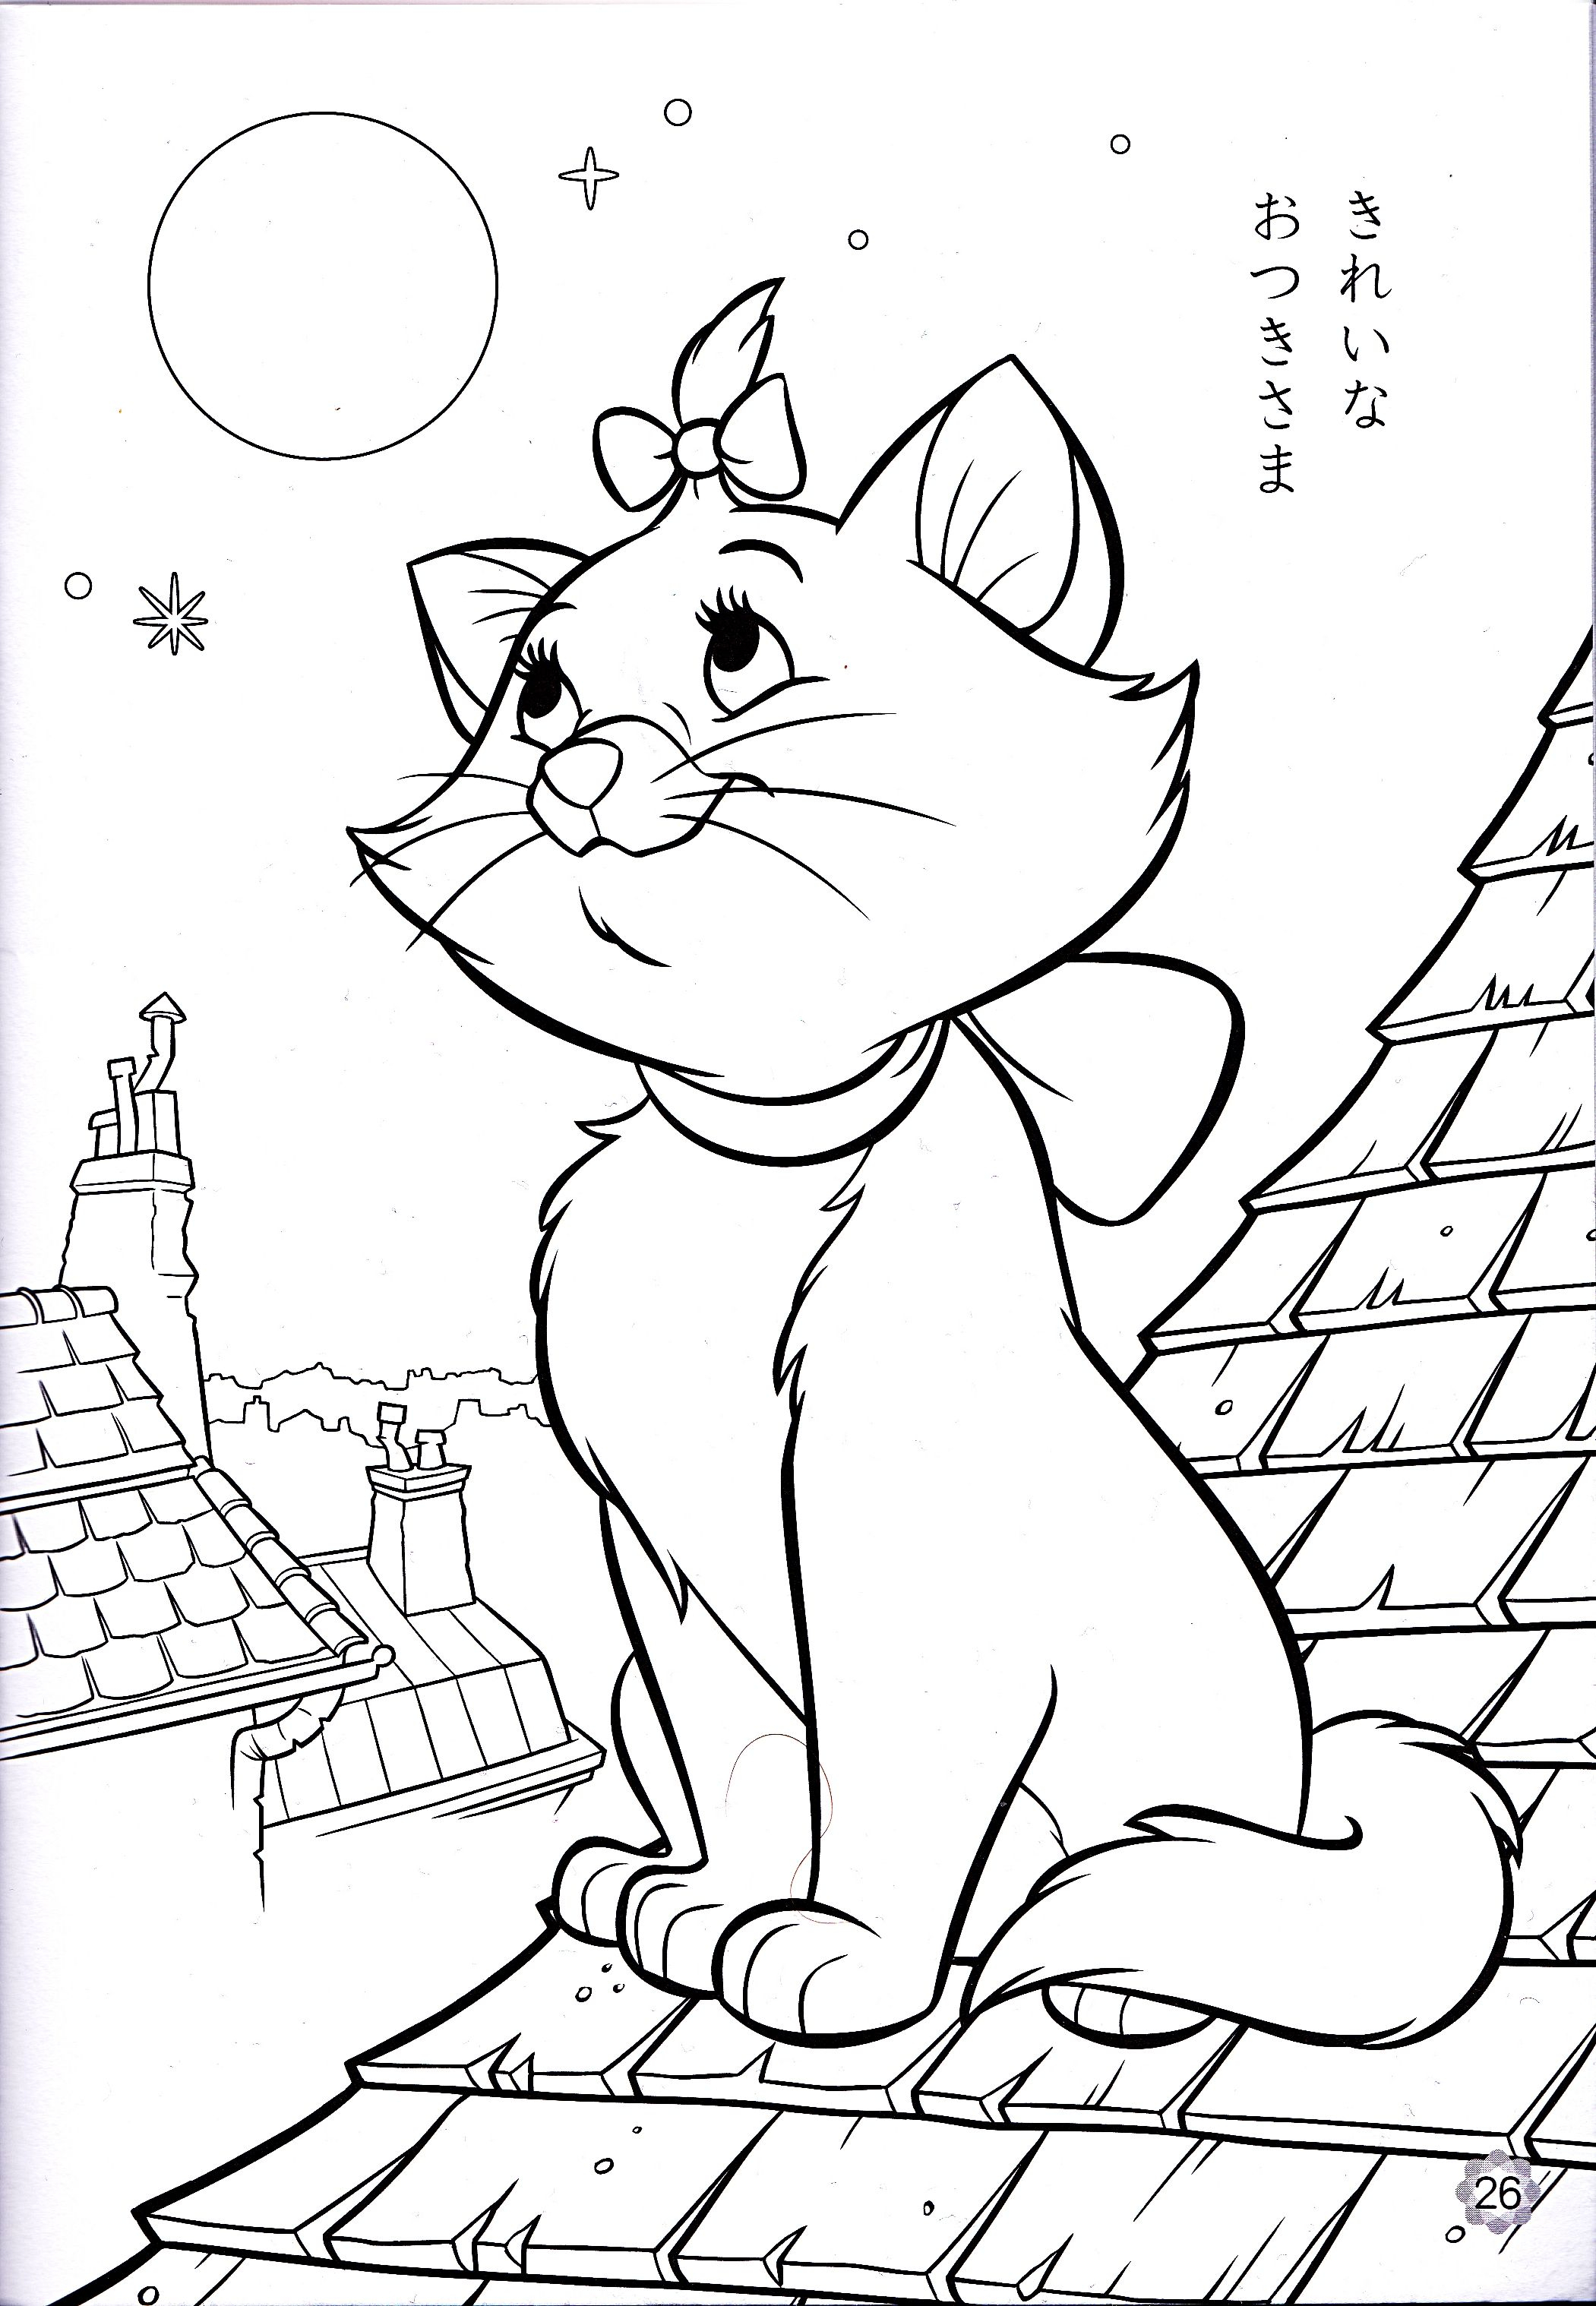 Walt Disney World Coloring Pages - Walt Disney Coloring Pages Marie Walt Disney Characters Download